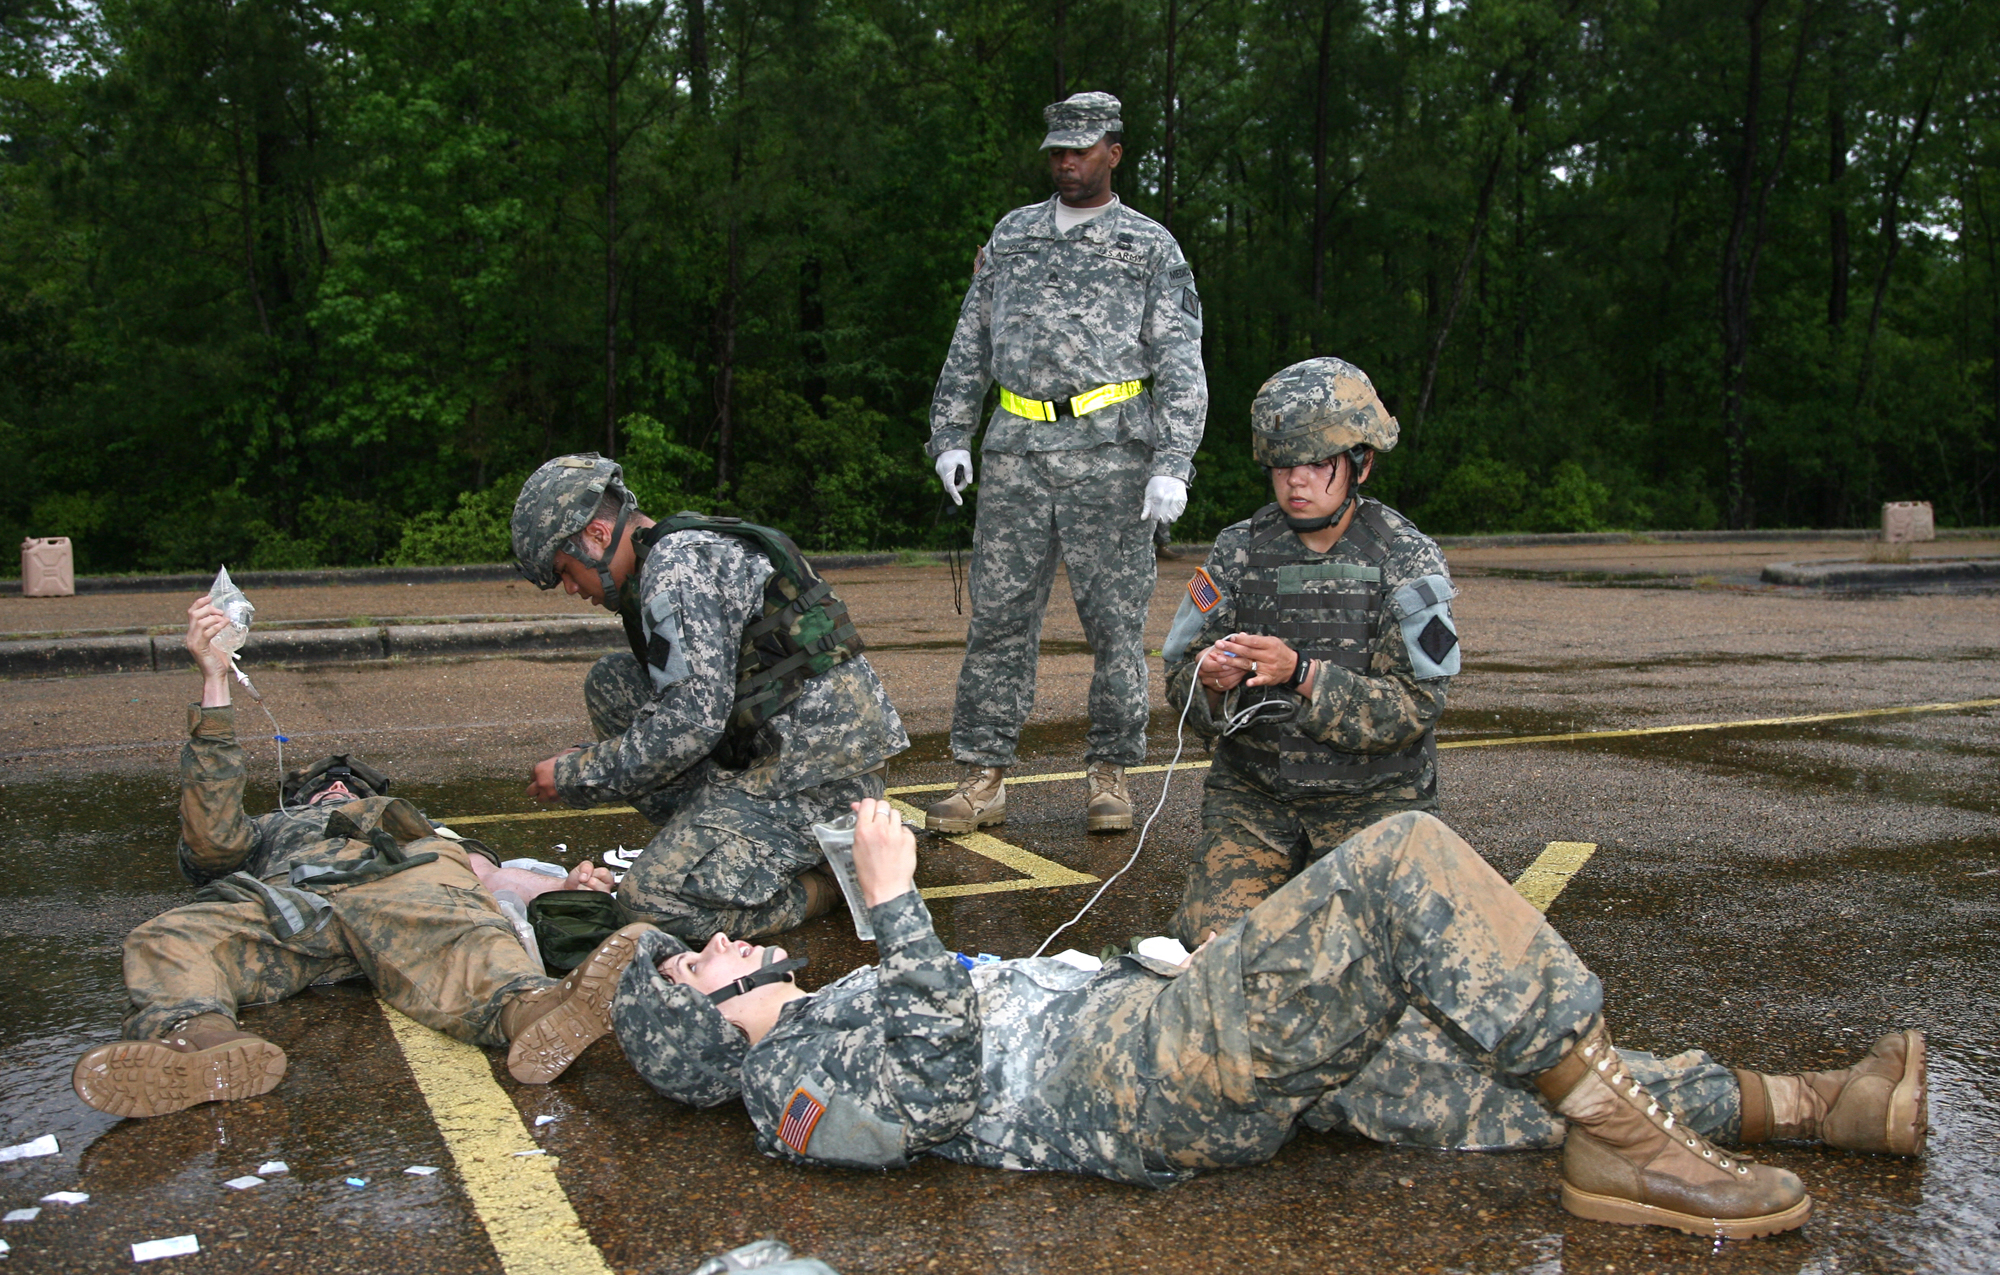 US-ARMY-TRAINING-JRTC-37.jpg